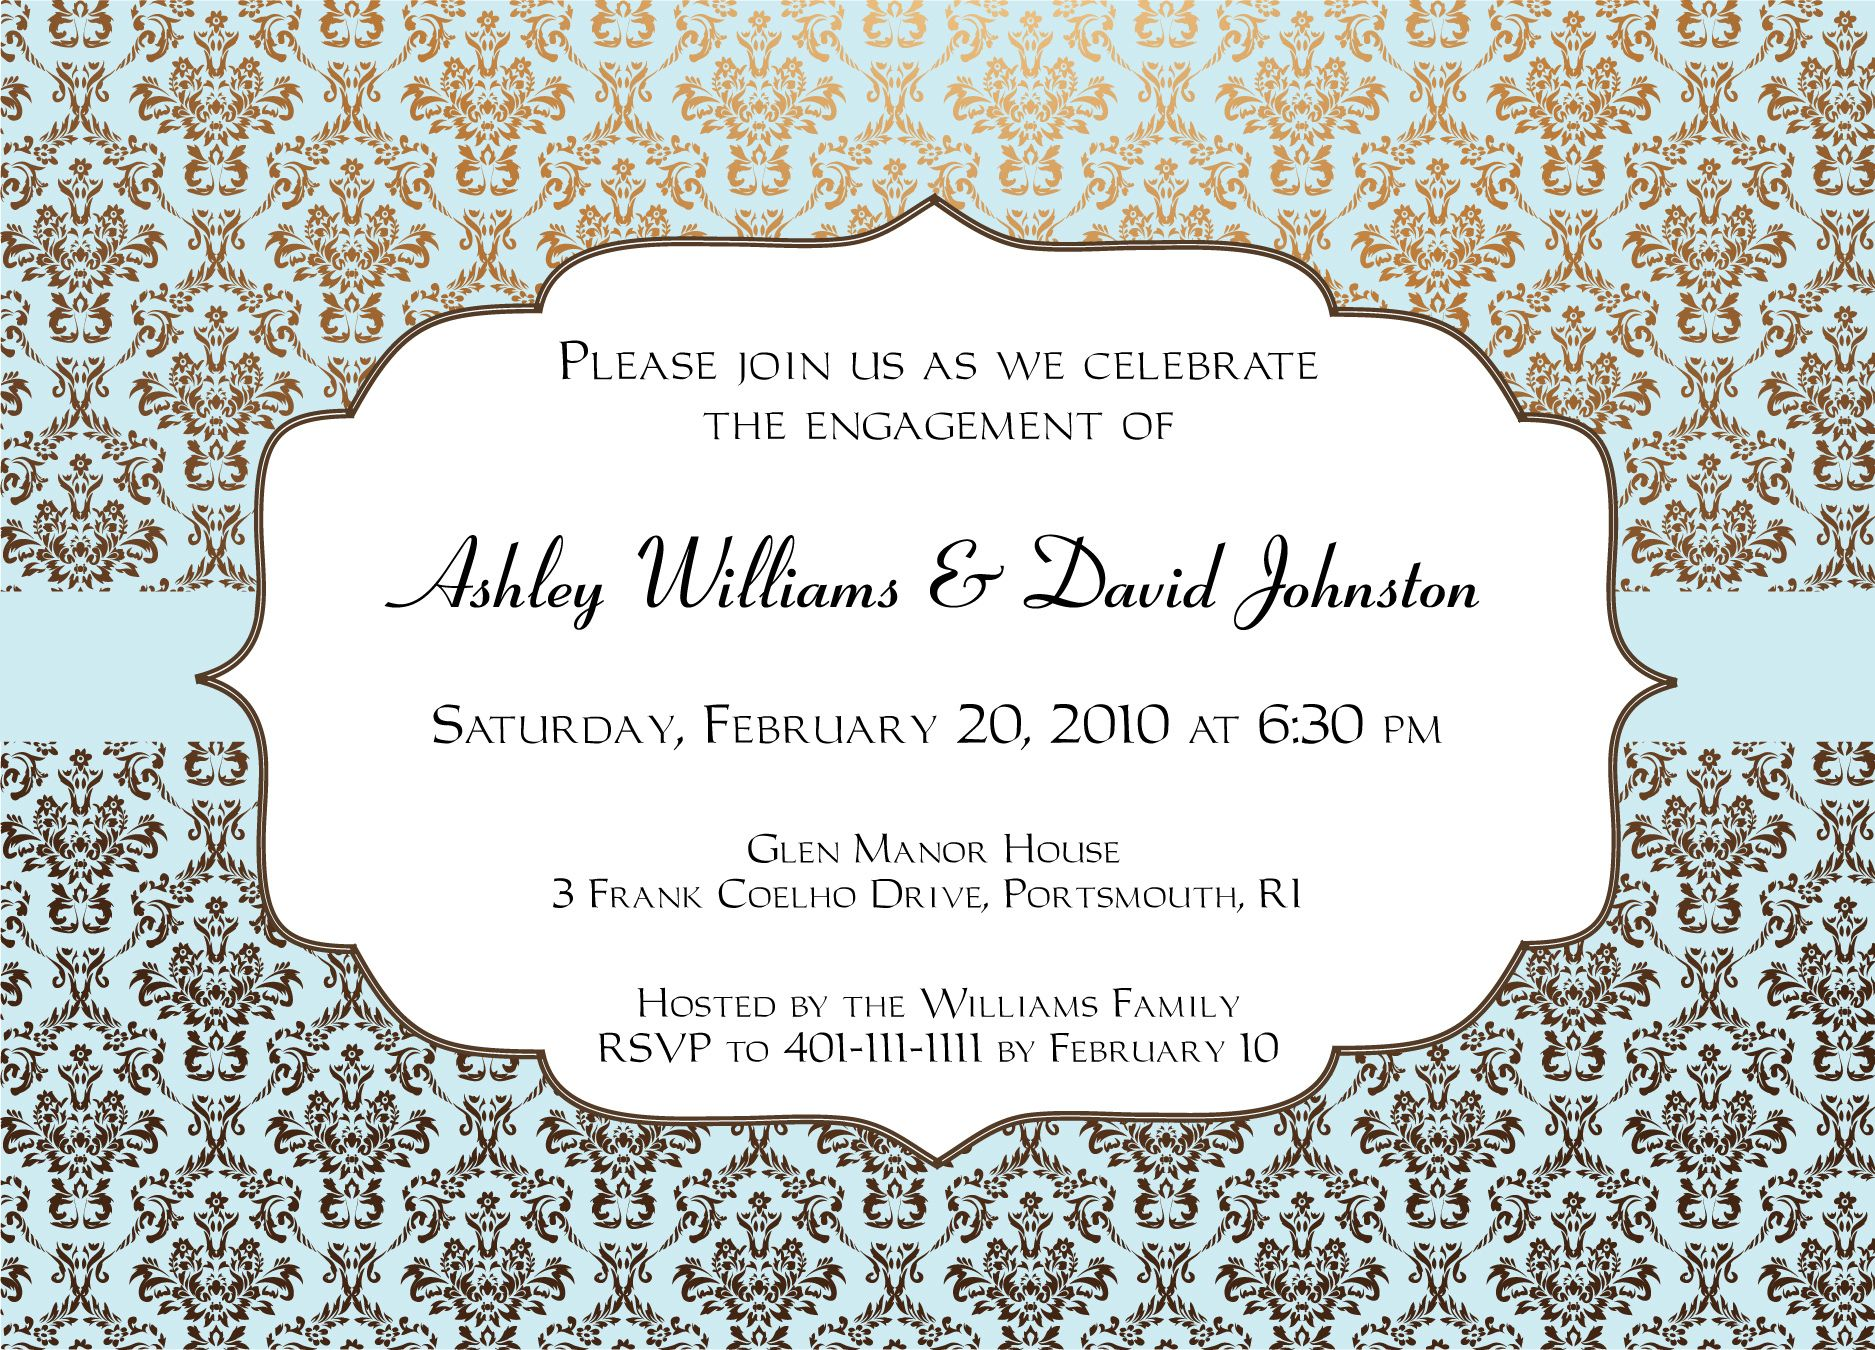 Exceptional Engagement Party Invitations Templates | ... Invitation Templates  Engagement Invitation Design Invitation Templates Idea Engagement Invitations Online Templates